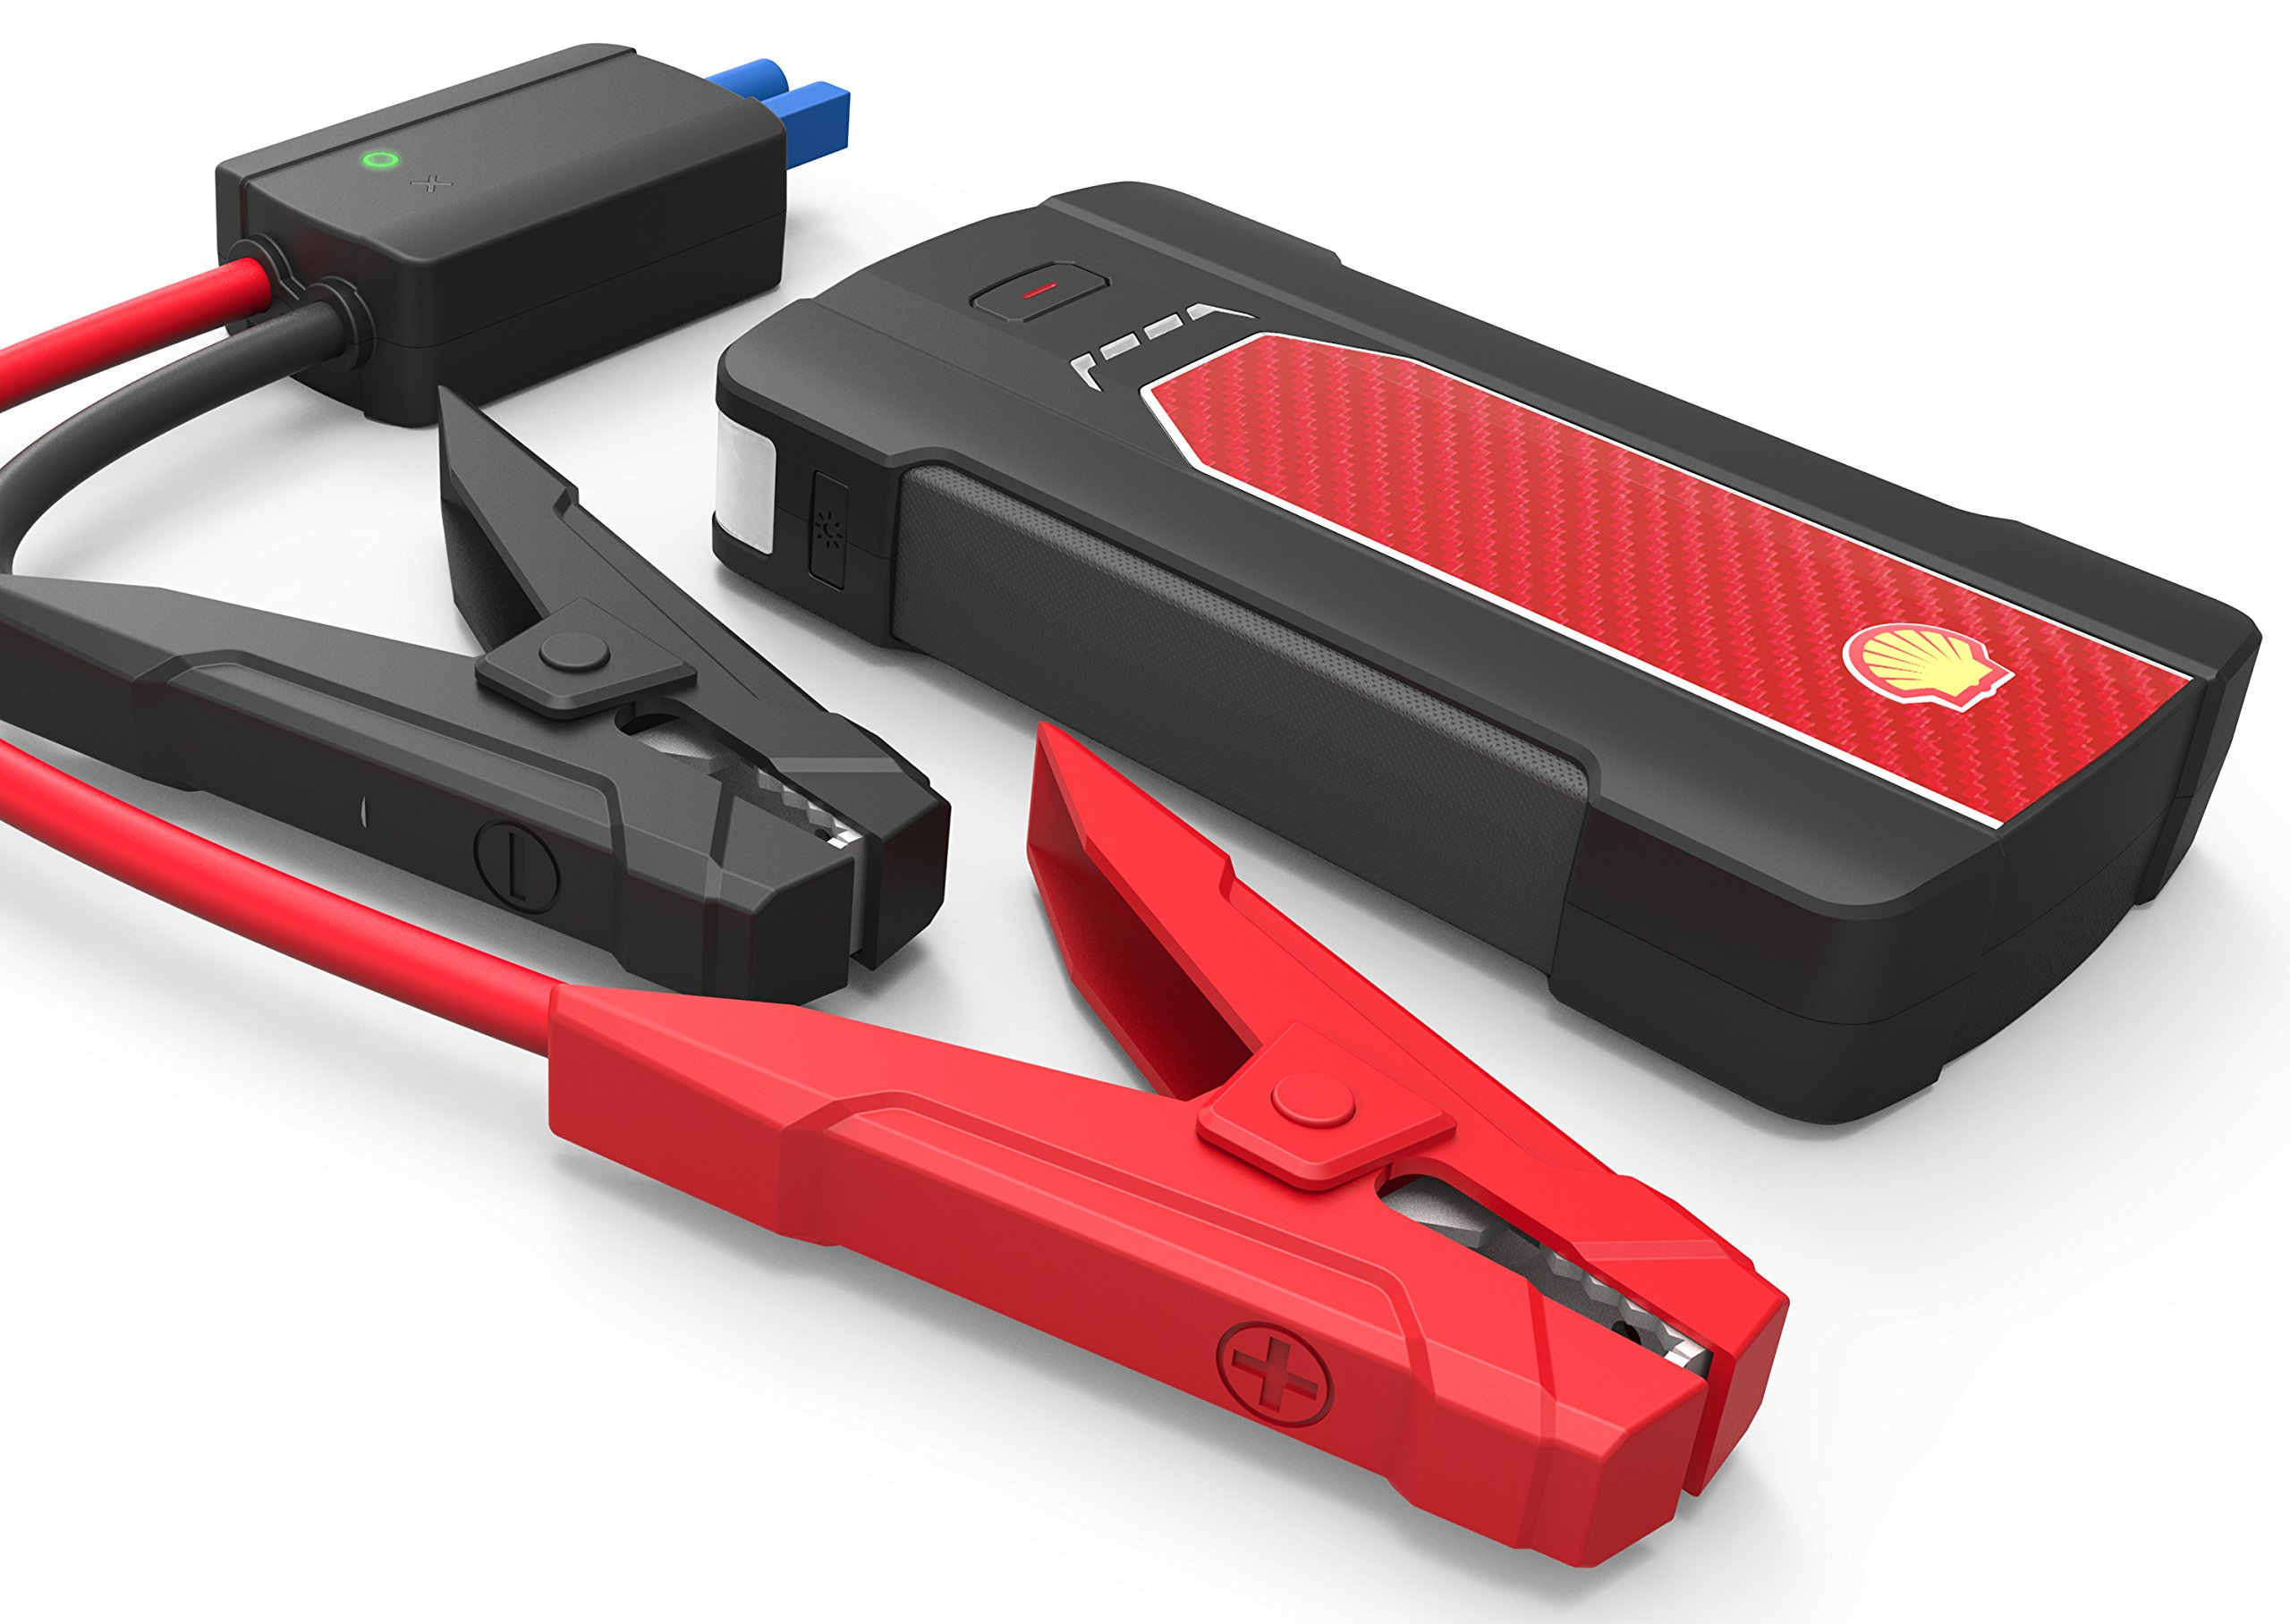 Shell Jump Starter, Power Pack,450A Peak 7000mAh, (Up to 6.8 liter Gas or 2.5 liter Diesel Engine) Battery Booster Pack, Power Bank With Smart Jump Start Cable, Flashlight, Car Charger, USB Output.